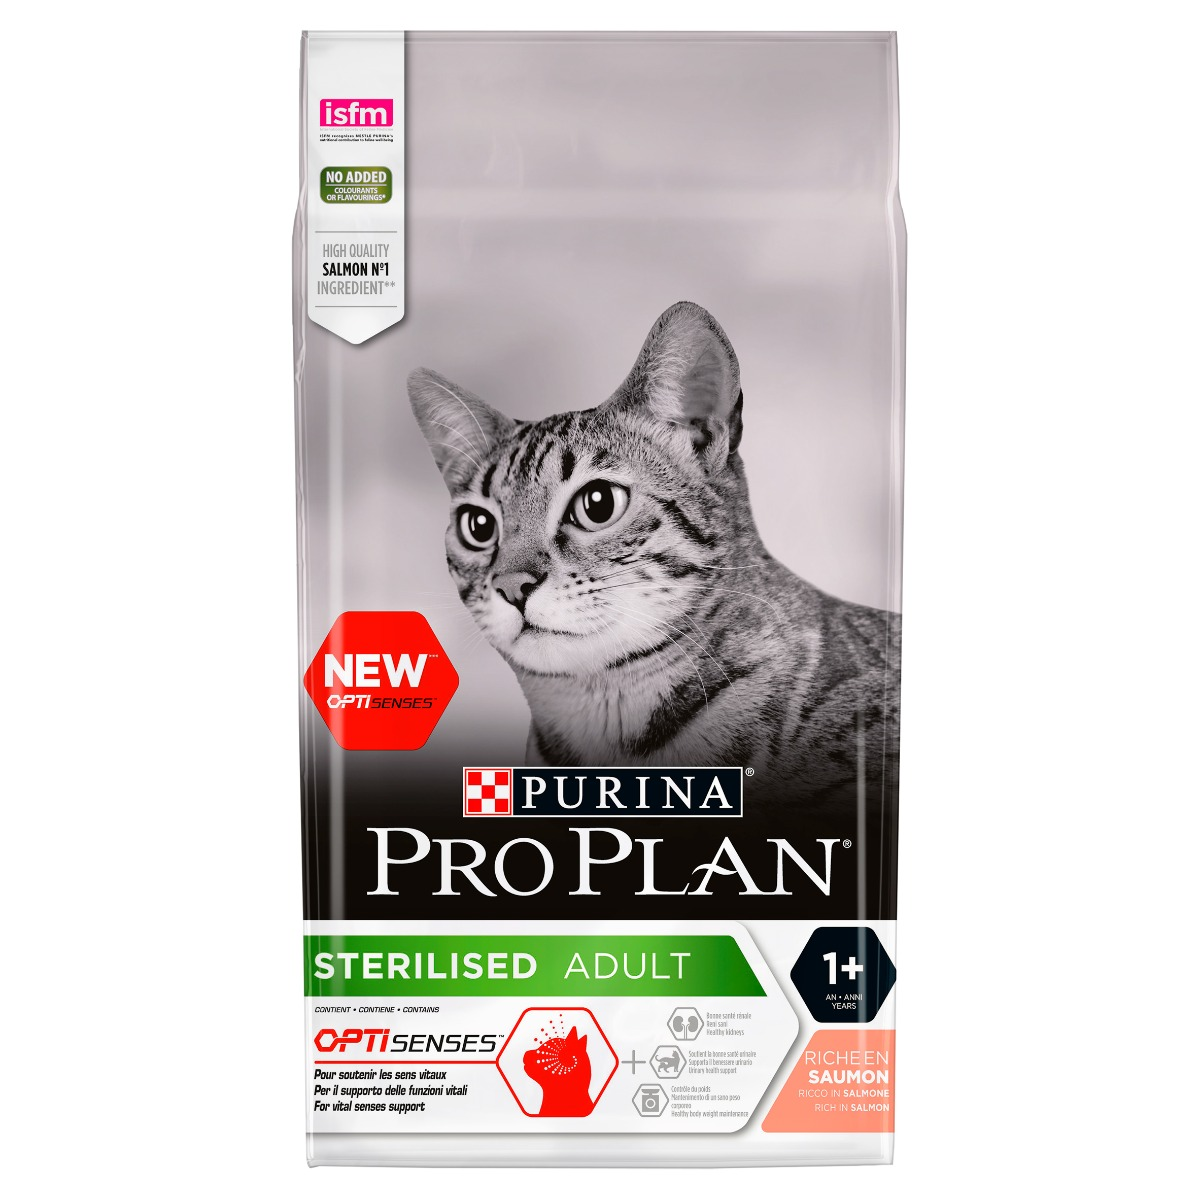 FREE cat tickler toy with selected Pro Plan food! - Animed